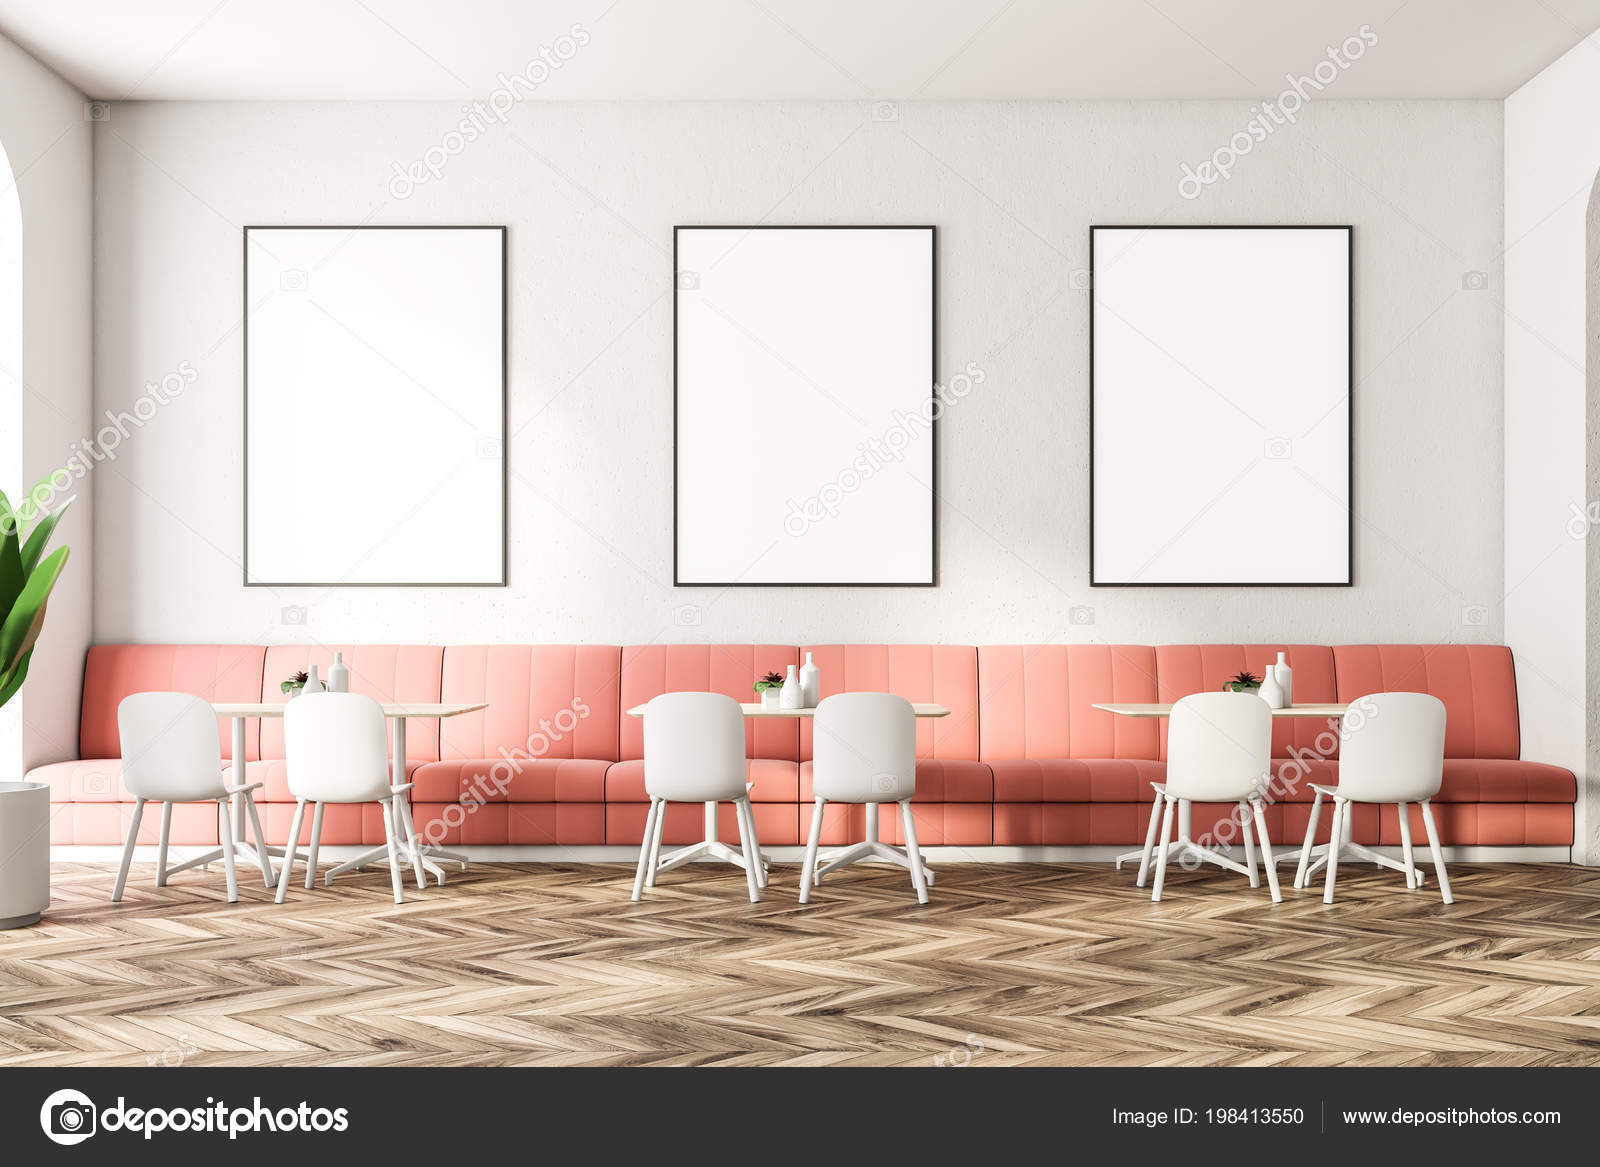 Pleasant Poster Gallery Modern Restaurant Interior Pink Sofas White Dailytribune Chair Design For Home Dailytribuneorg